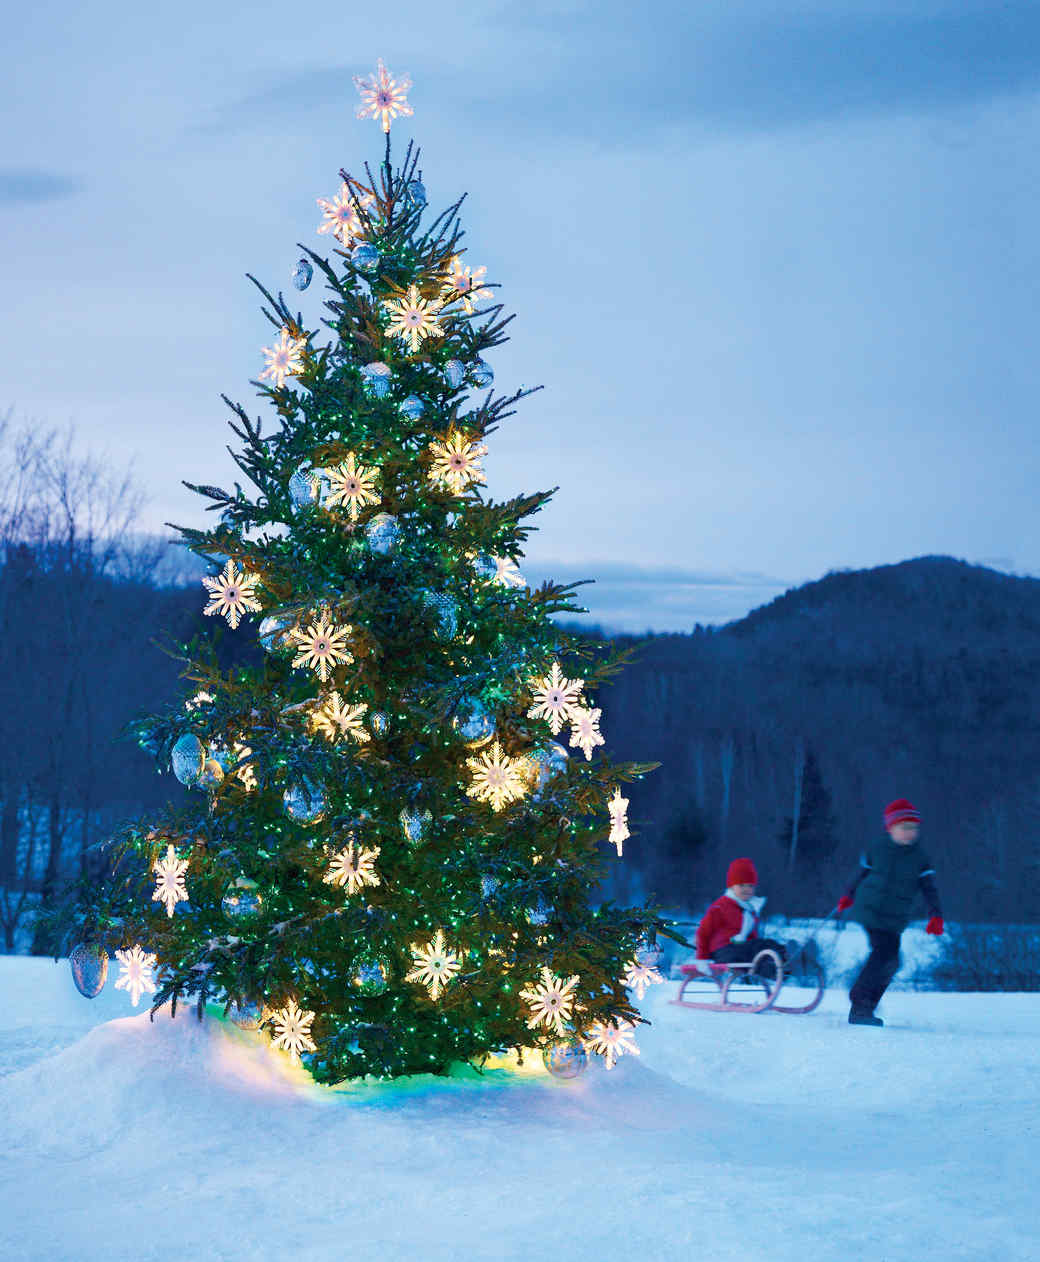 Outdoor Christmas Tree with Snowflakes, Glass Balls, and String Lights